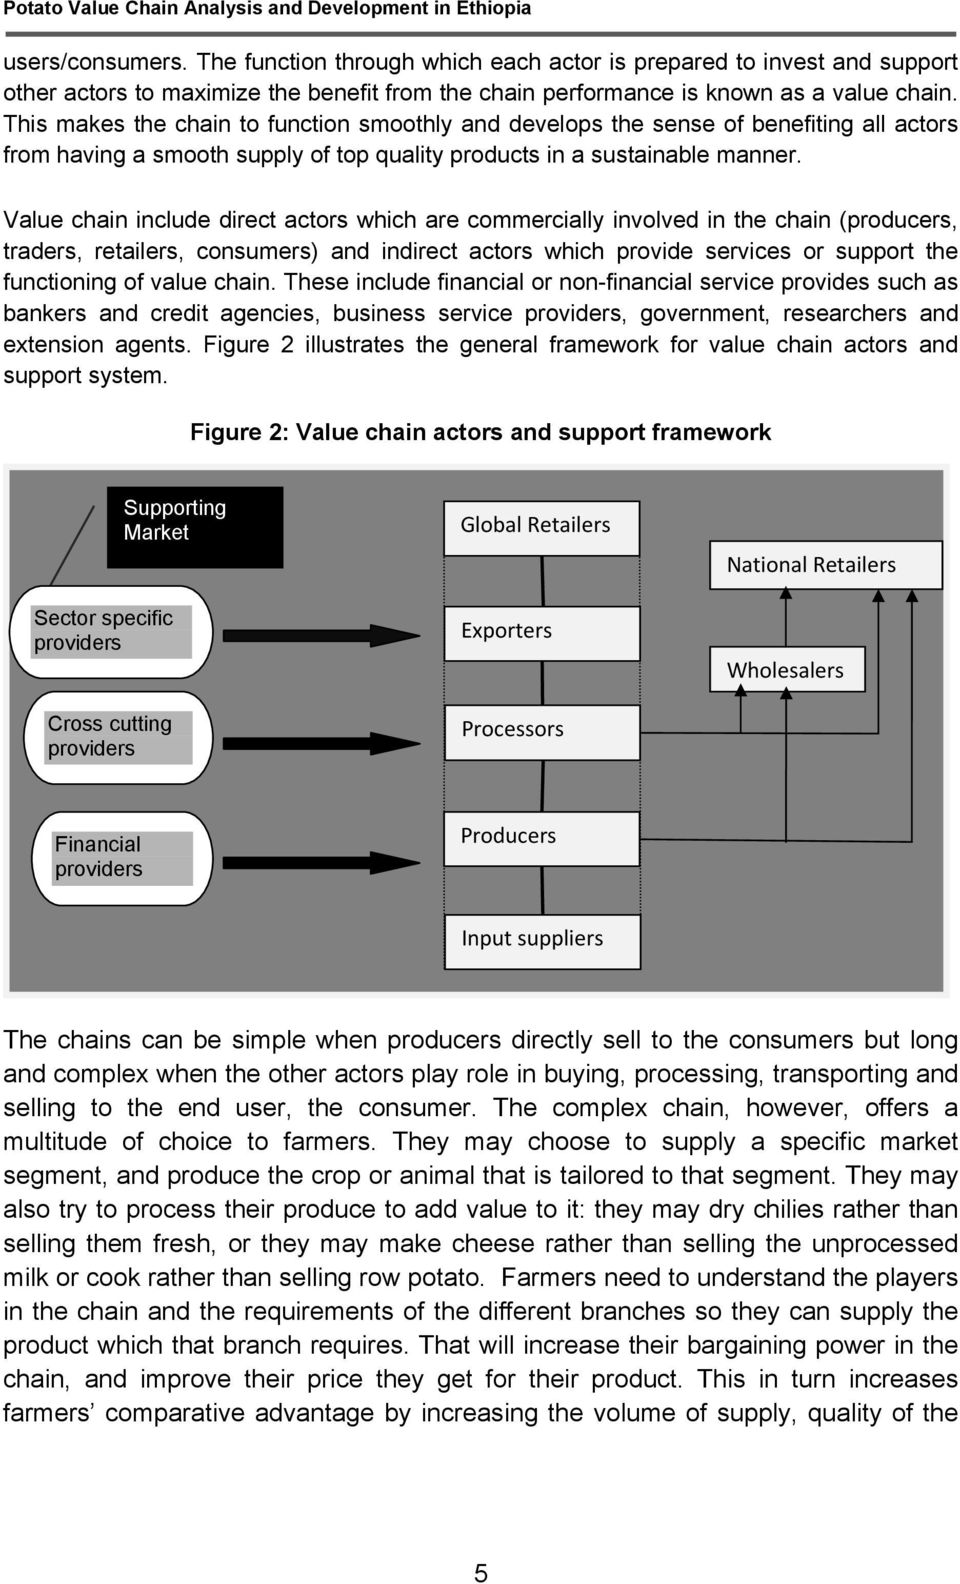 Potato Value Chain Analysis and Development in Ethiopia - PDF